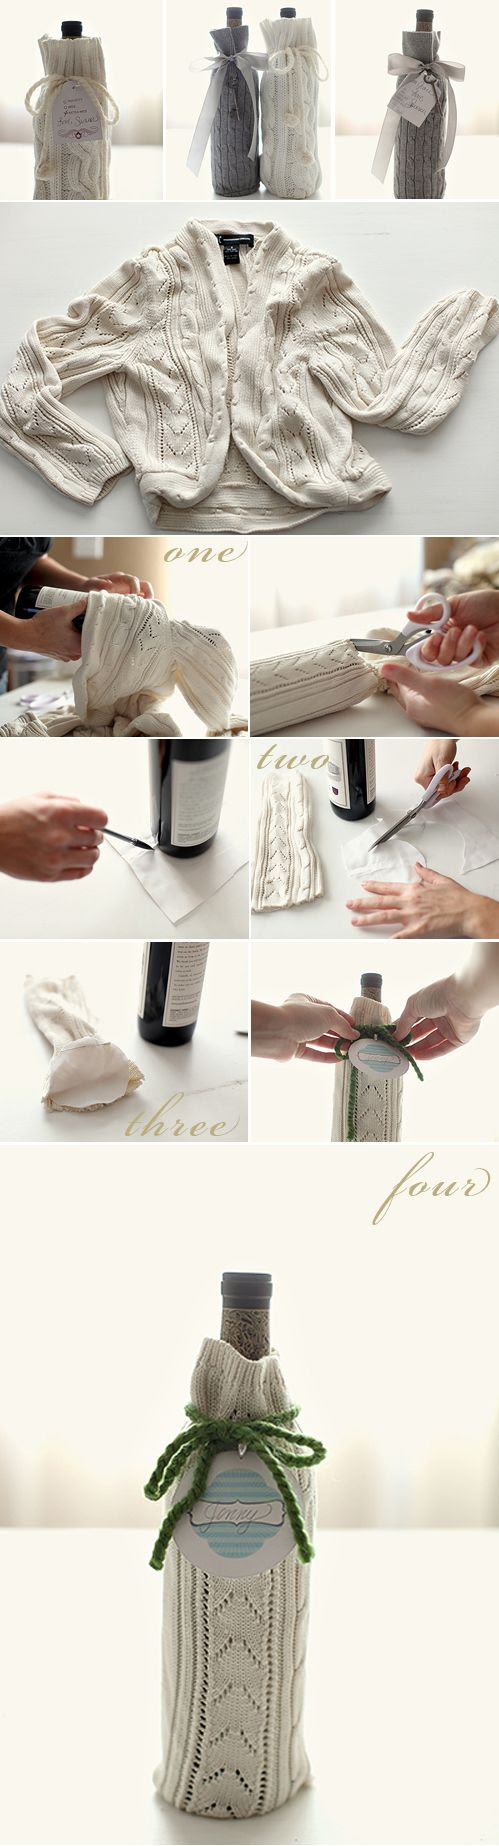 Wine bottle cozy: | 30 Easy And Cuddly DIY Ideas For Recycling Old Sweaters